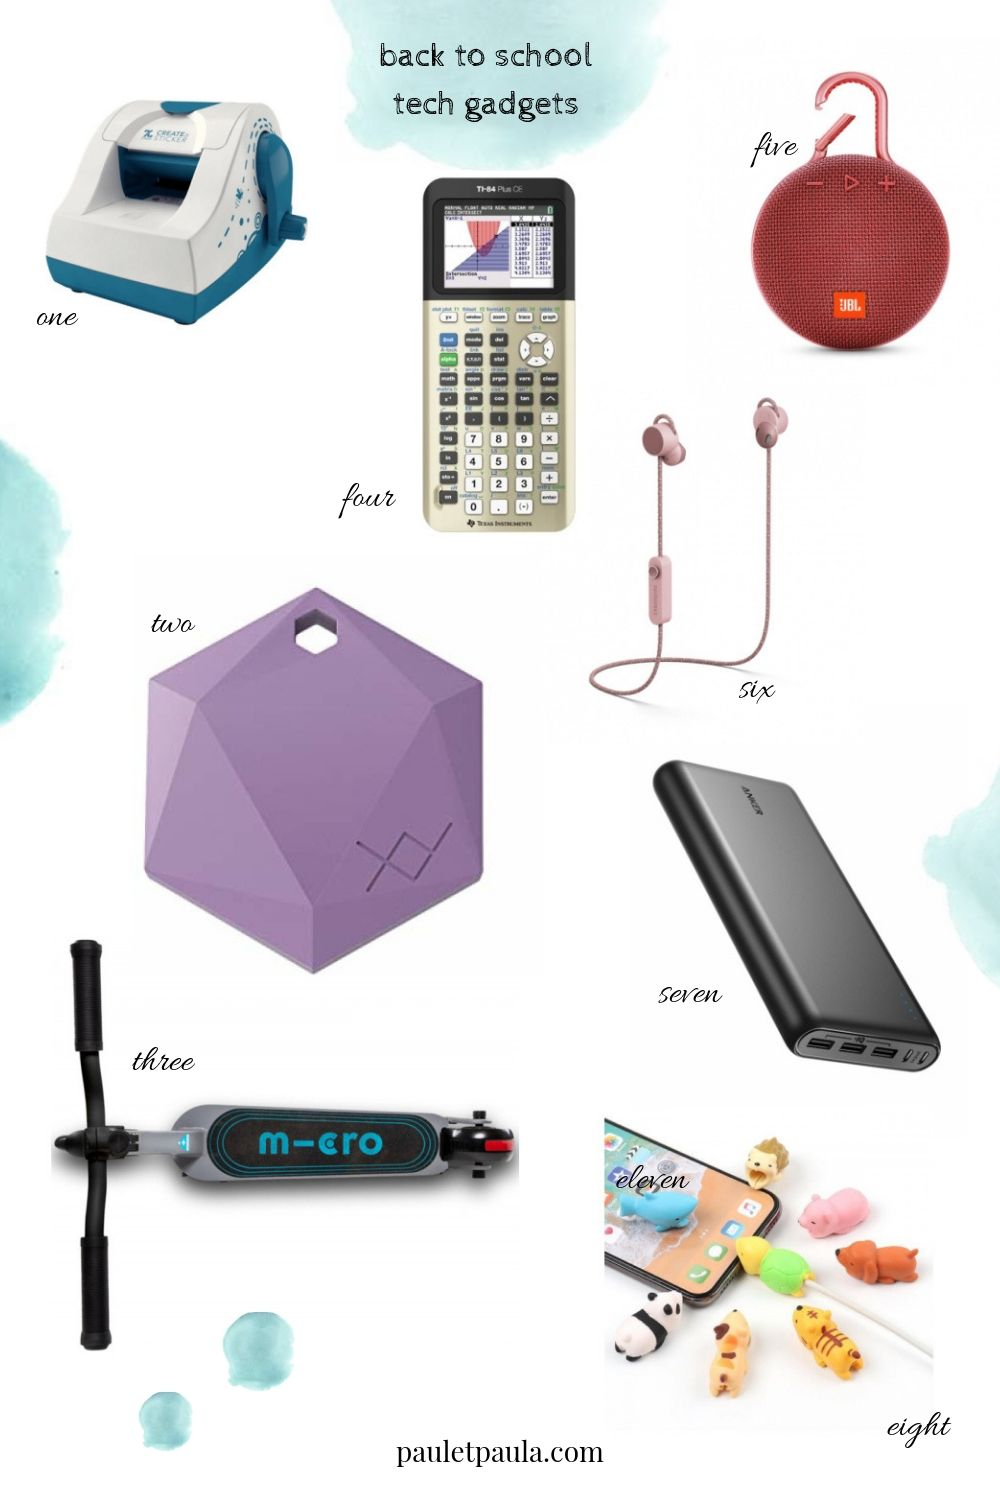 Back to School 2019 - tech gadgets!